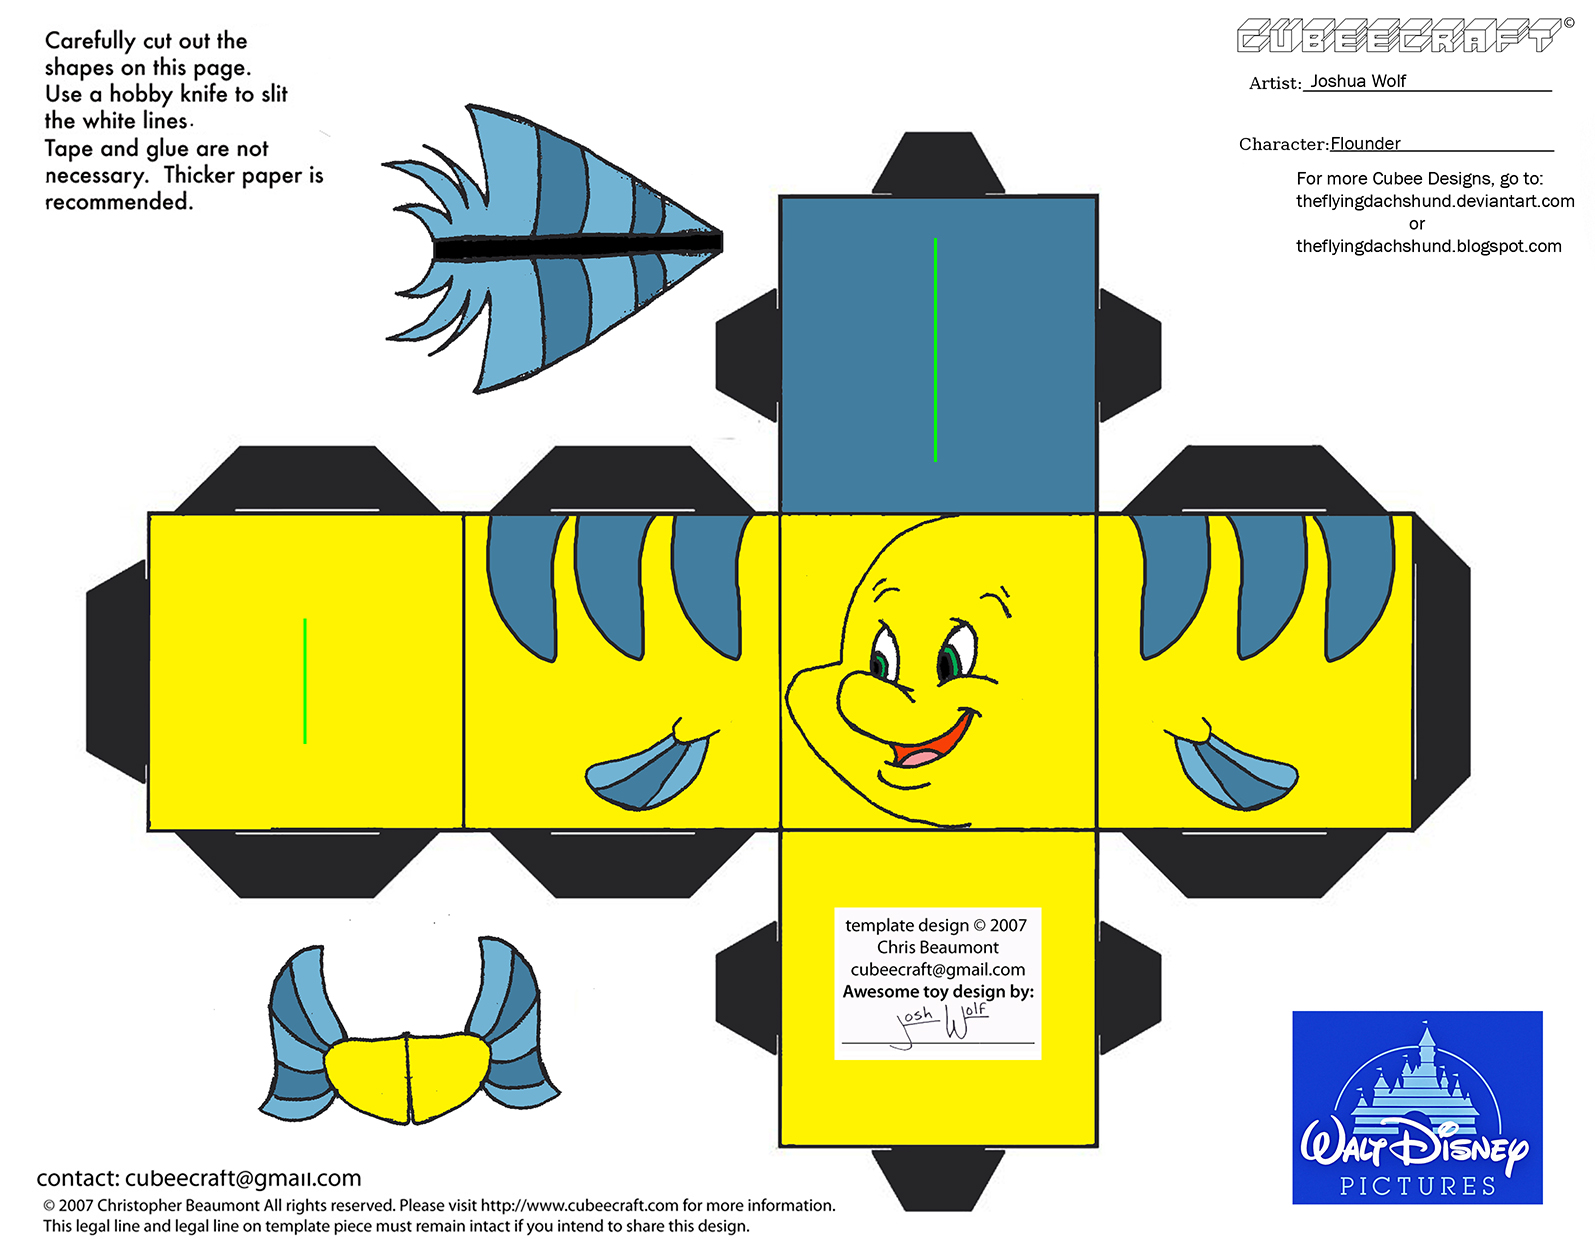 The Simpsons 3d Wallpaper Dis43 Flounder Cubee By Theflyingdachshund On Deviantart